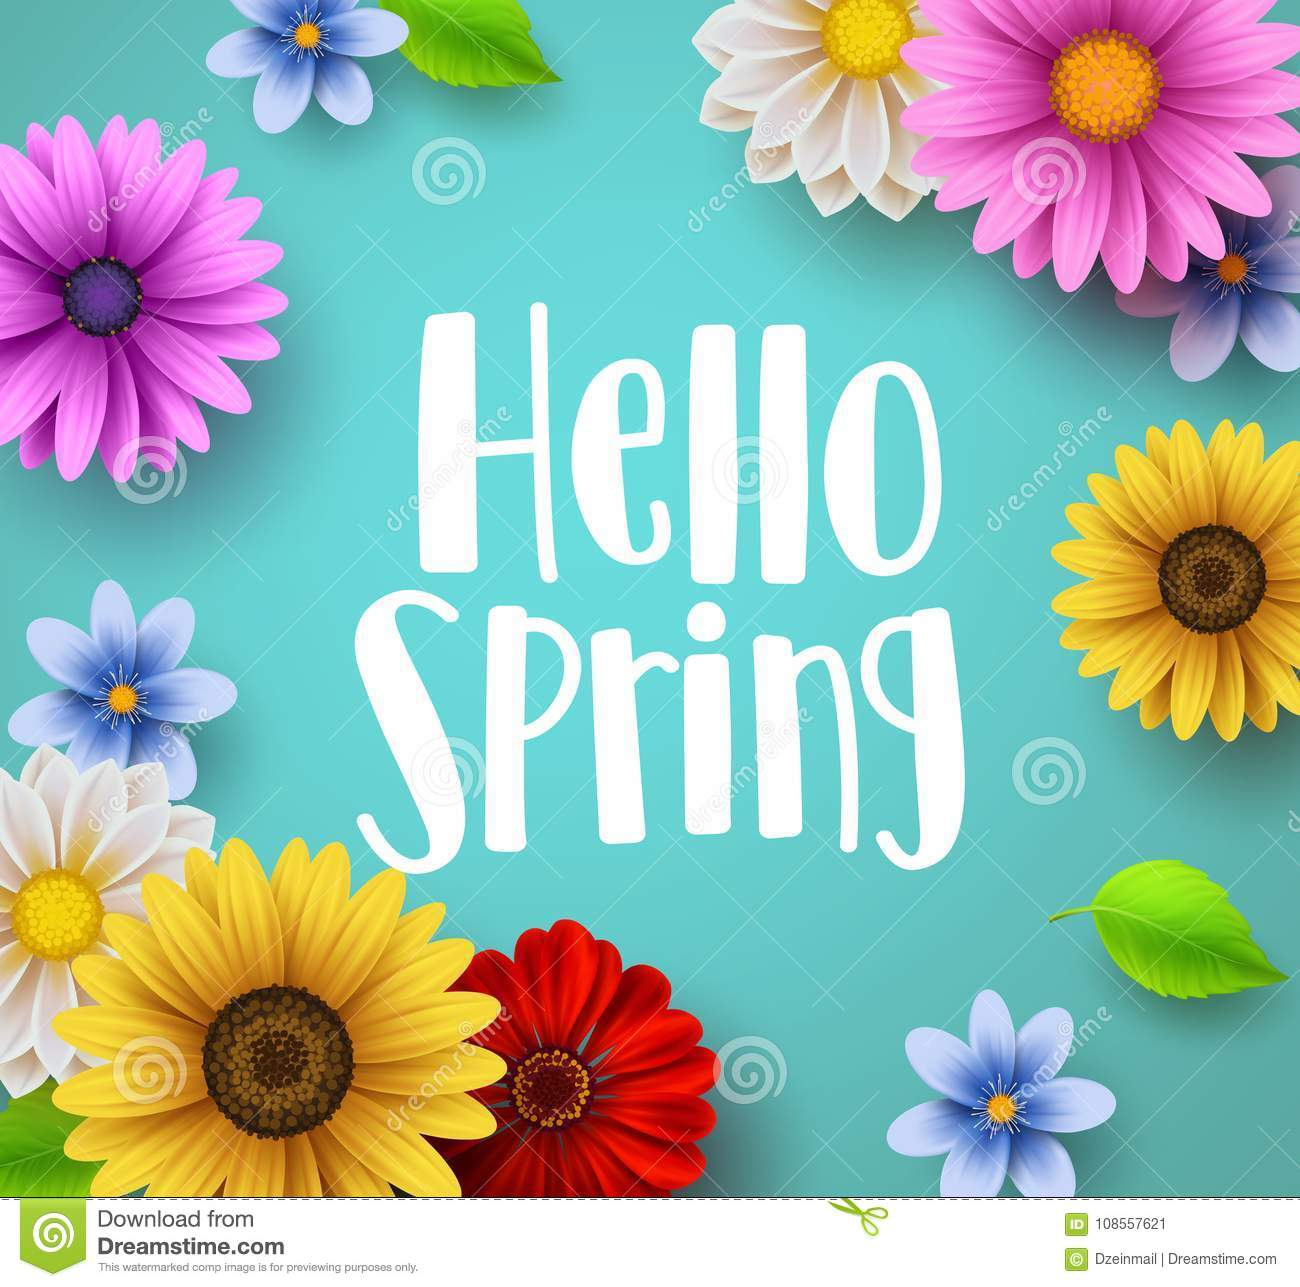 Hello Spring Text Vector Banner Greetings Design With Colorful